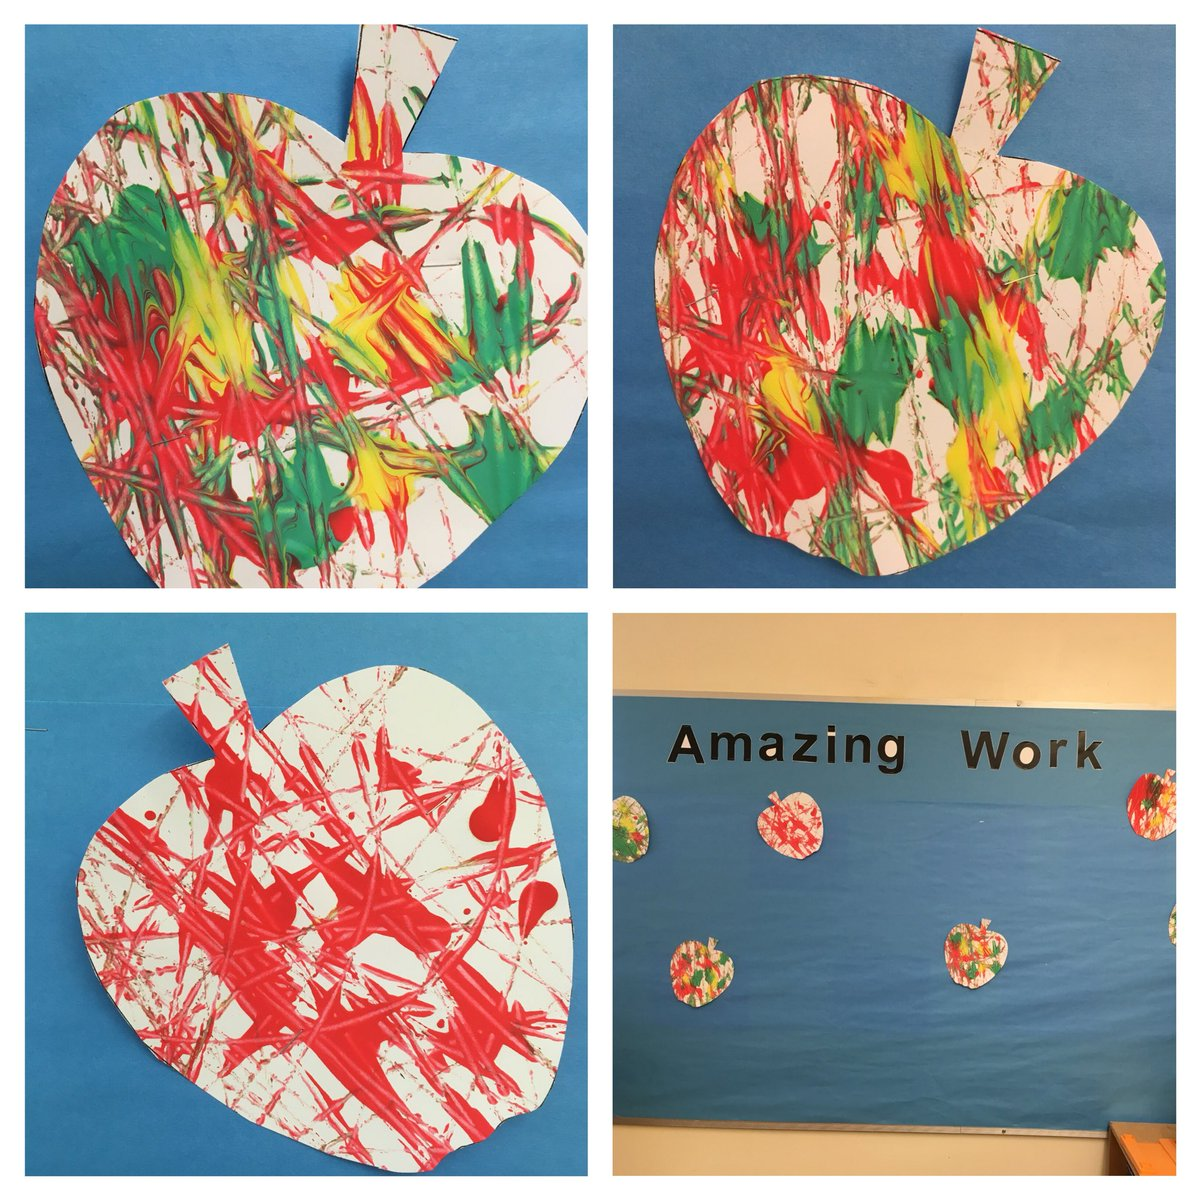 Ms Pre K On Twitter Adding To Our September Bulletin Boards We Are Doing An Apple Theme Marble Painting Sun Catchers With Contact Paper Prechool Preschoolteachersofinstagram Prekart Prekteachers Prek Specialeducation